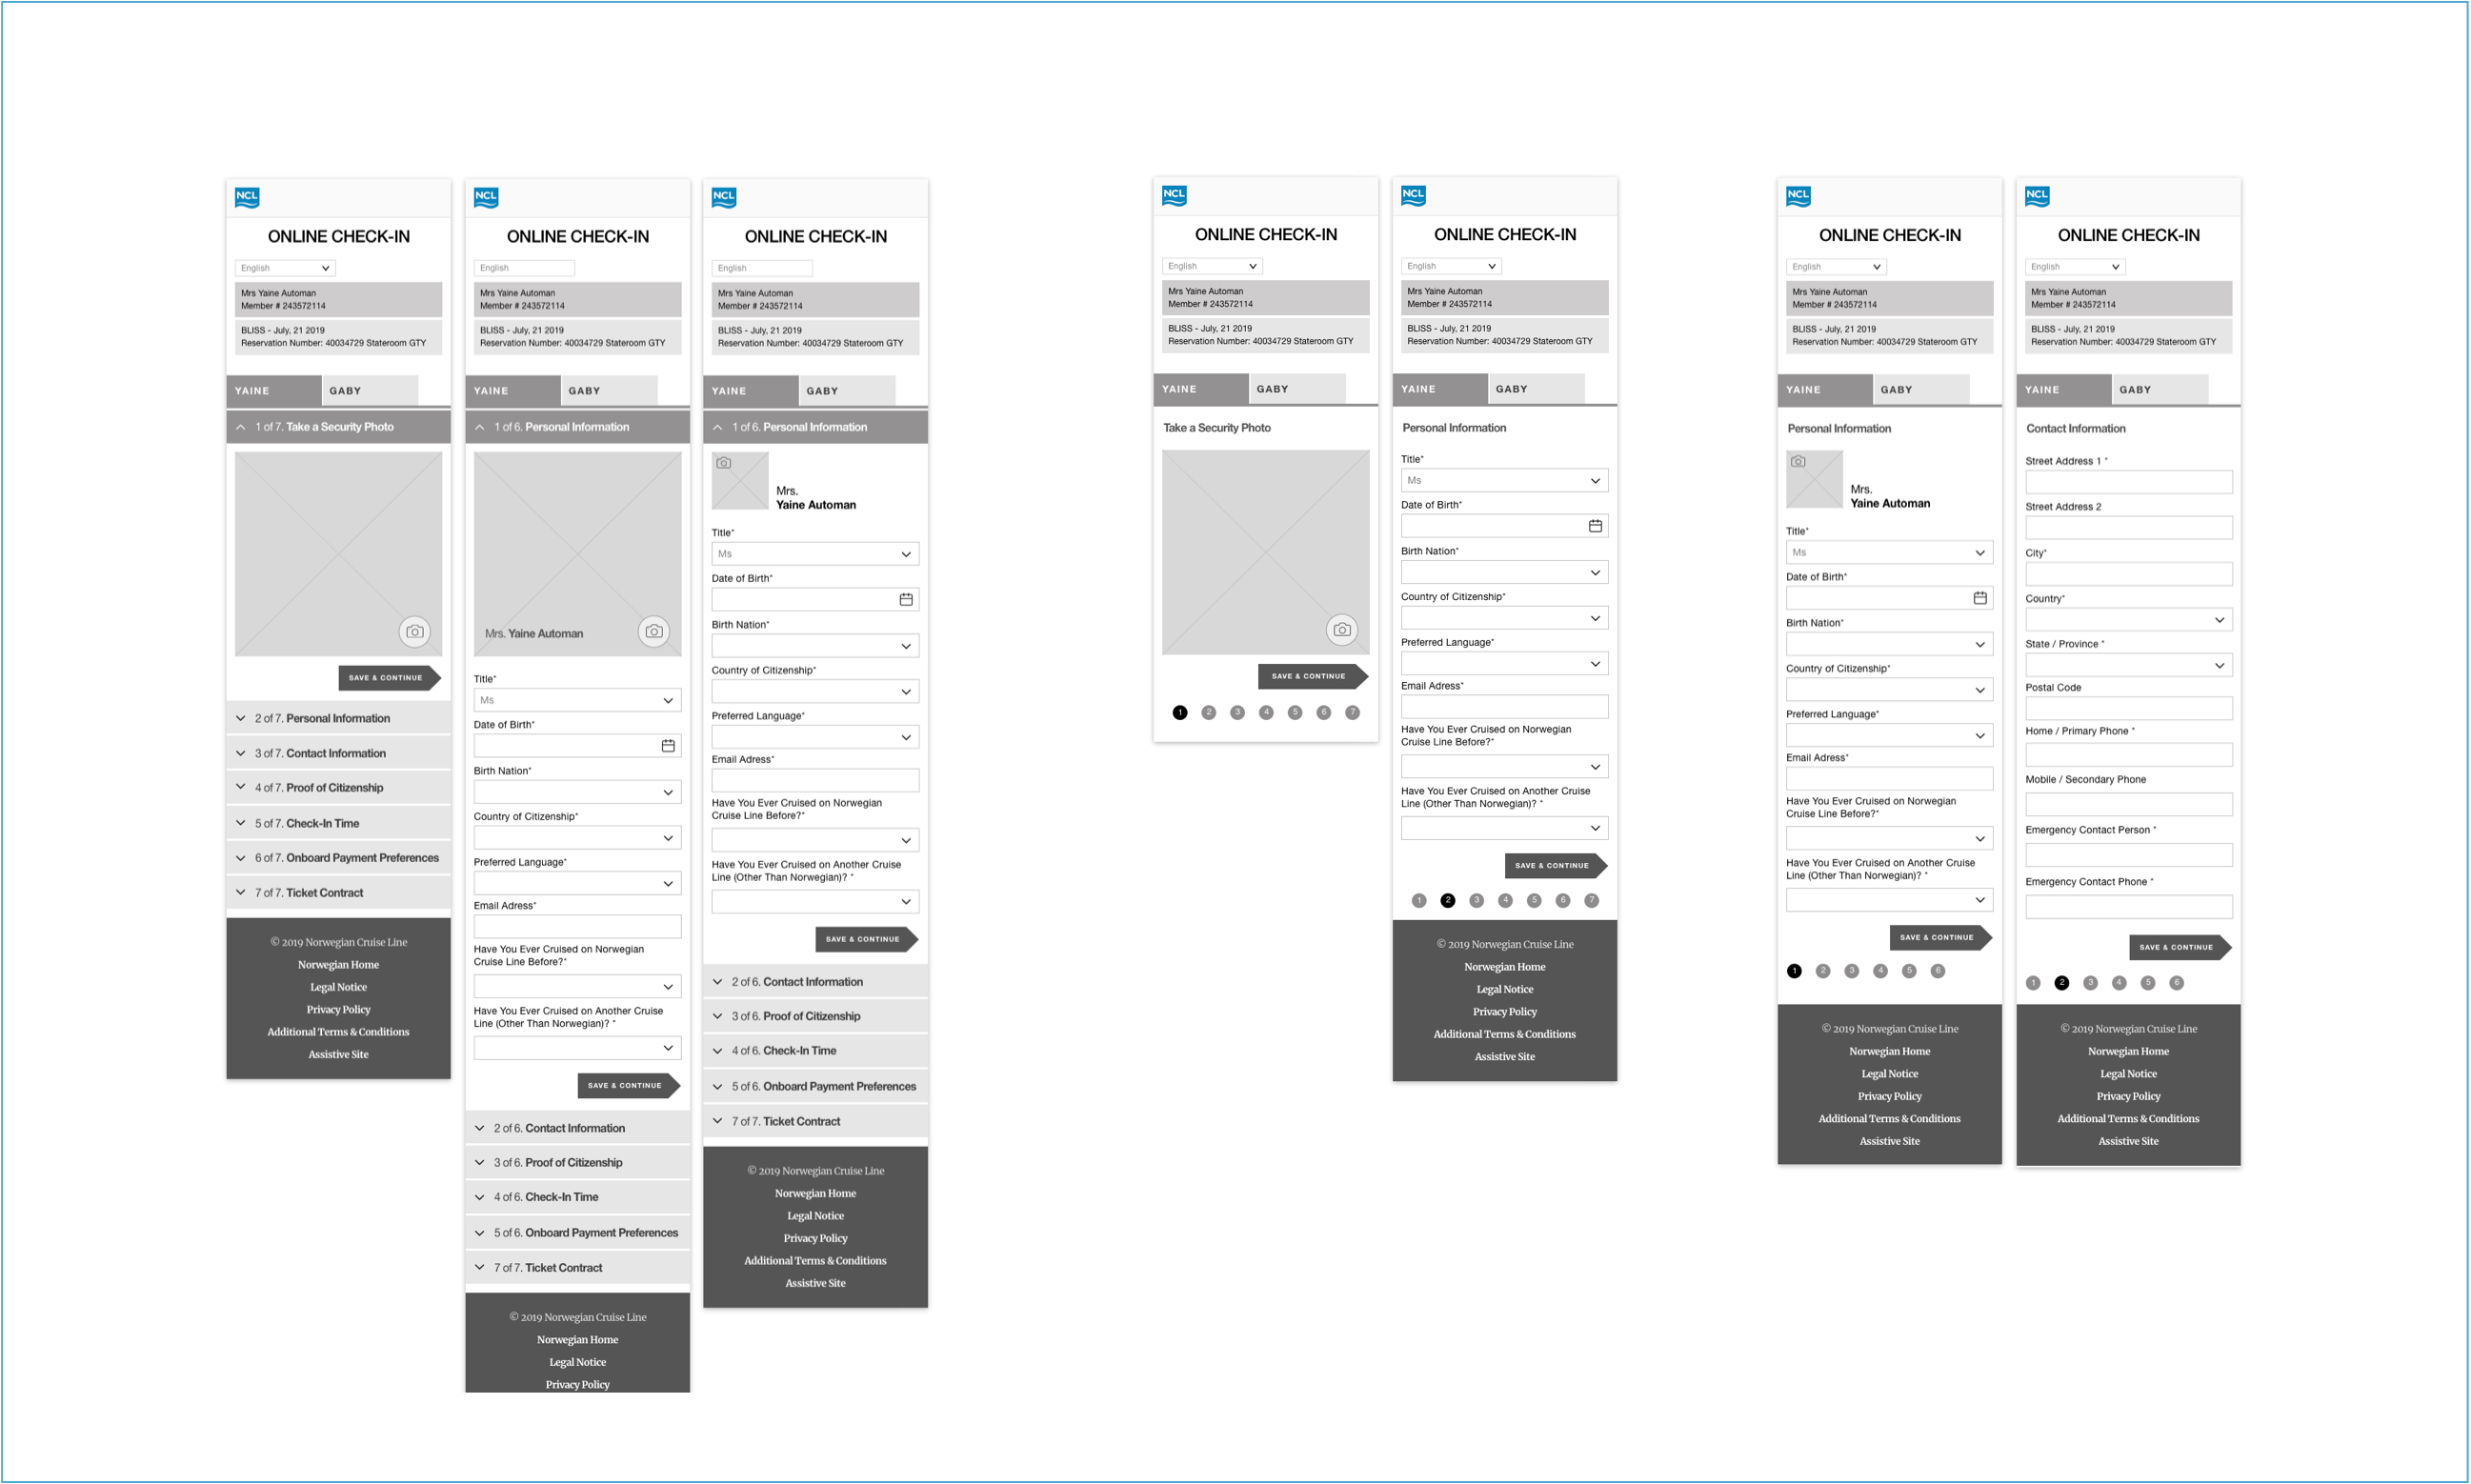 Wireframes of online check-in experience